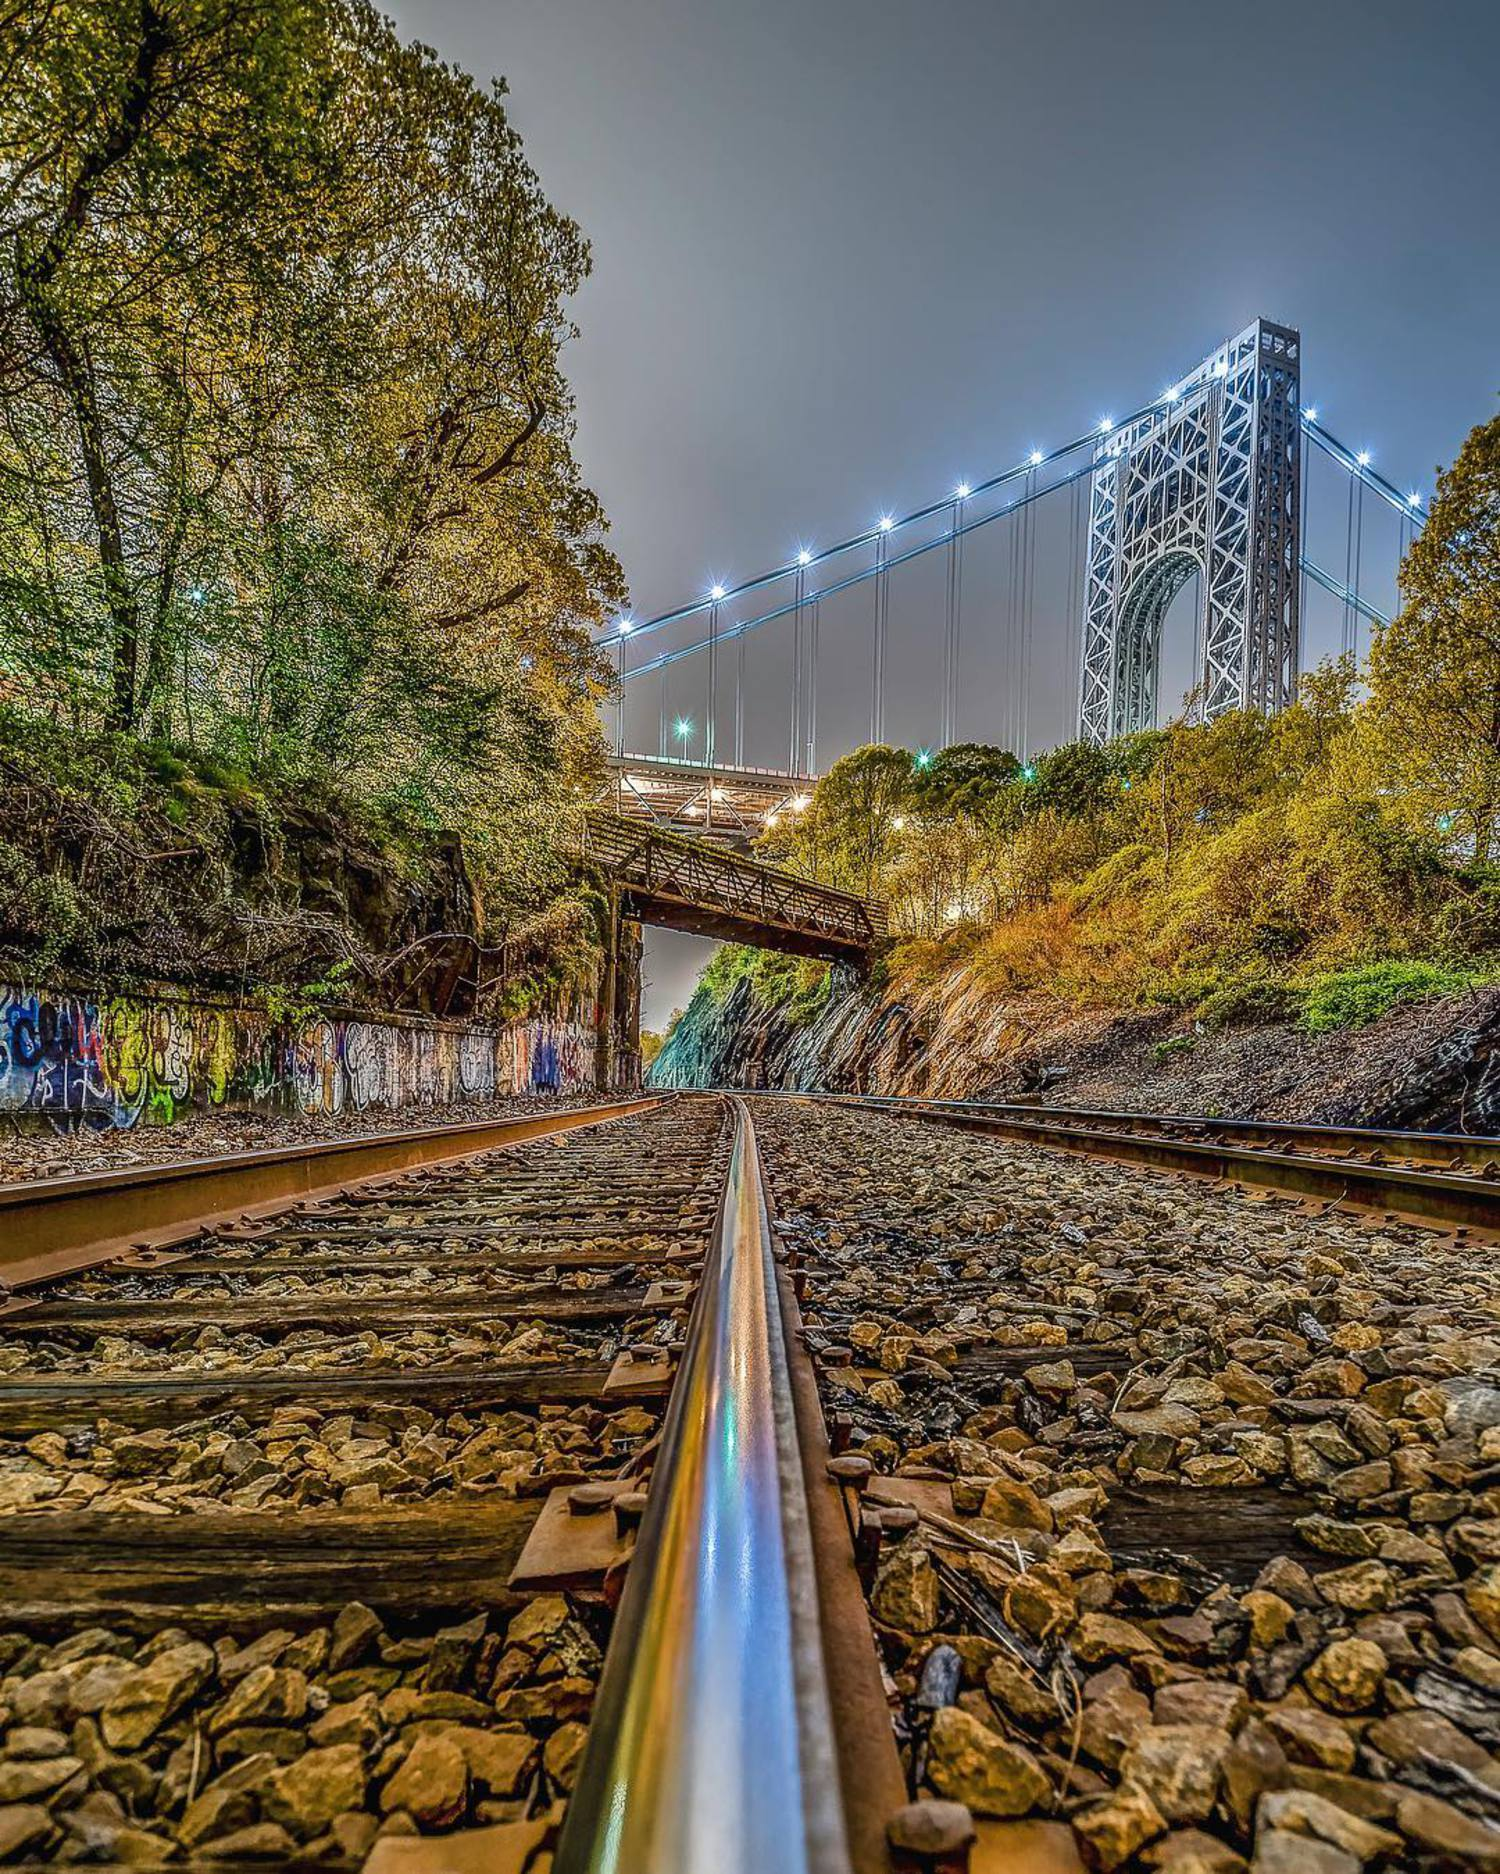 On Track. =============================== 🎞Shot info🎞 • Date: May 3rd, 2016 • Location: Washington Heights, NY • Camera: @Nikonusa D5500 • Lens: Nikkor 10-24 mm f/ 3.5-4.5 • Focal Length: 11mm • Shutter: 30 sec • Aperture: f/11 • ISO: 100 • Shot: @mefototripods Roadtrip / Auto Mode • Shot in RAW • Edit: Lightroom / IG / Photomatix =============================== Big thank you to the pages who have featured my pics recently🙏🏻👊🏻🙏🏻 Your support is greatly appreciated @ =============================== Be sure to check out all my very talented friends I have tagged in the pic 💪🏼👍🏻💪🏼 =============================== #killianmoore #bestvacations #nycprimeshot #what_i_saw_in_nyc #moodygrams #agameoftones #topnewyorkphoto #worldbestshot #ig_global_life #illgrammers #ig_worldclub #thebestdestinations #global_hotshotz #thebest_capture #createcommune #beautifuldestinations #usaprimeshot #abc7ny #urbanandstreet #awesome_earthpix #meistershots #igpodium_mag #igpowerclub #ig_nycity #instagood#watchthisinstagood#8visual#photooftheday #newyork_instagram #createconnectexplore